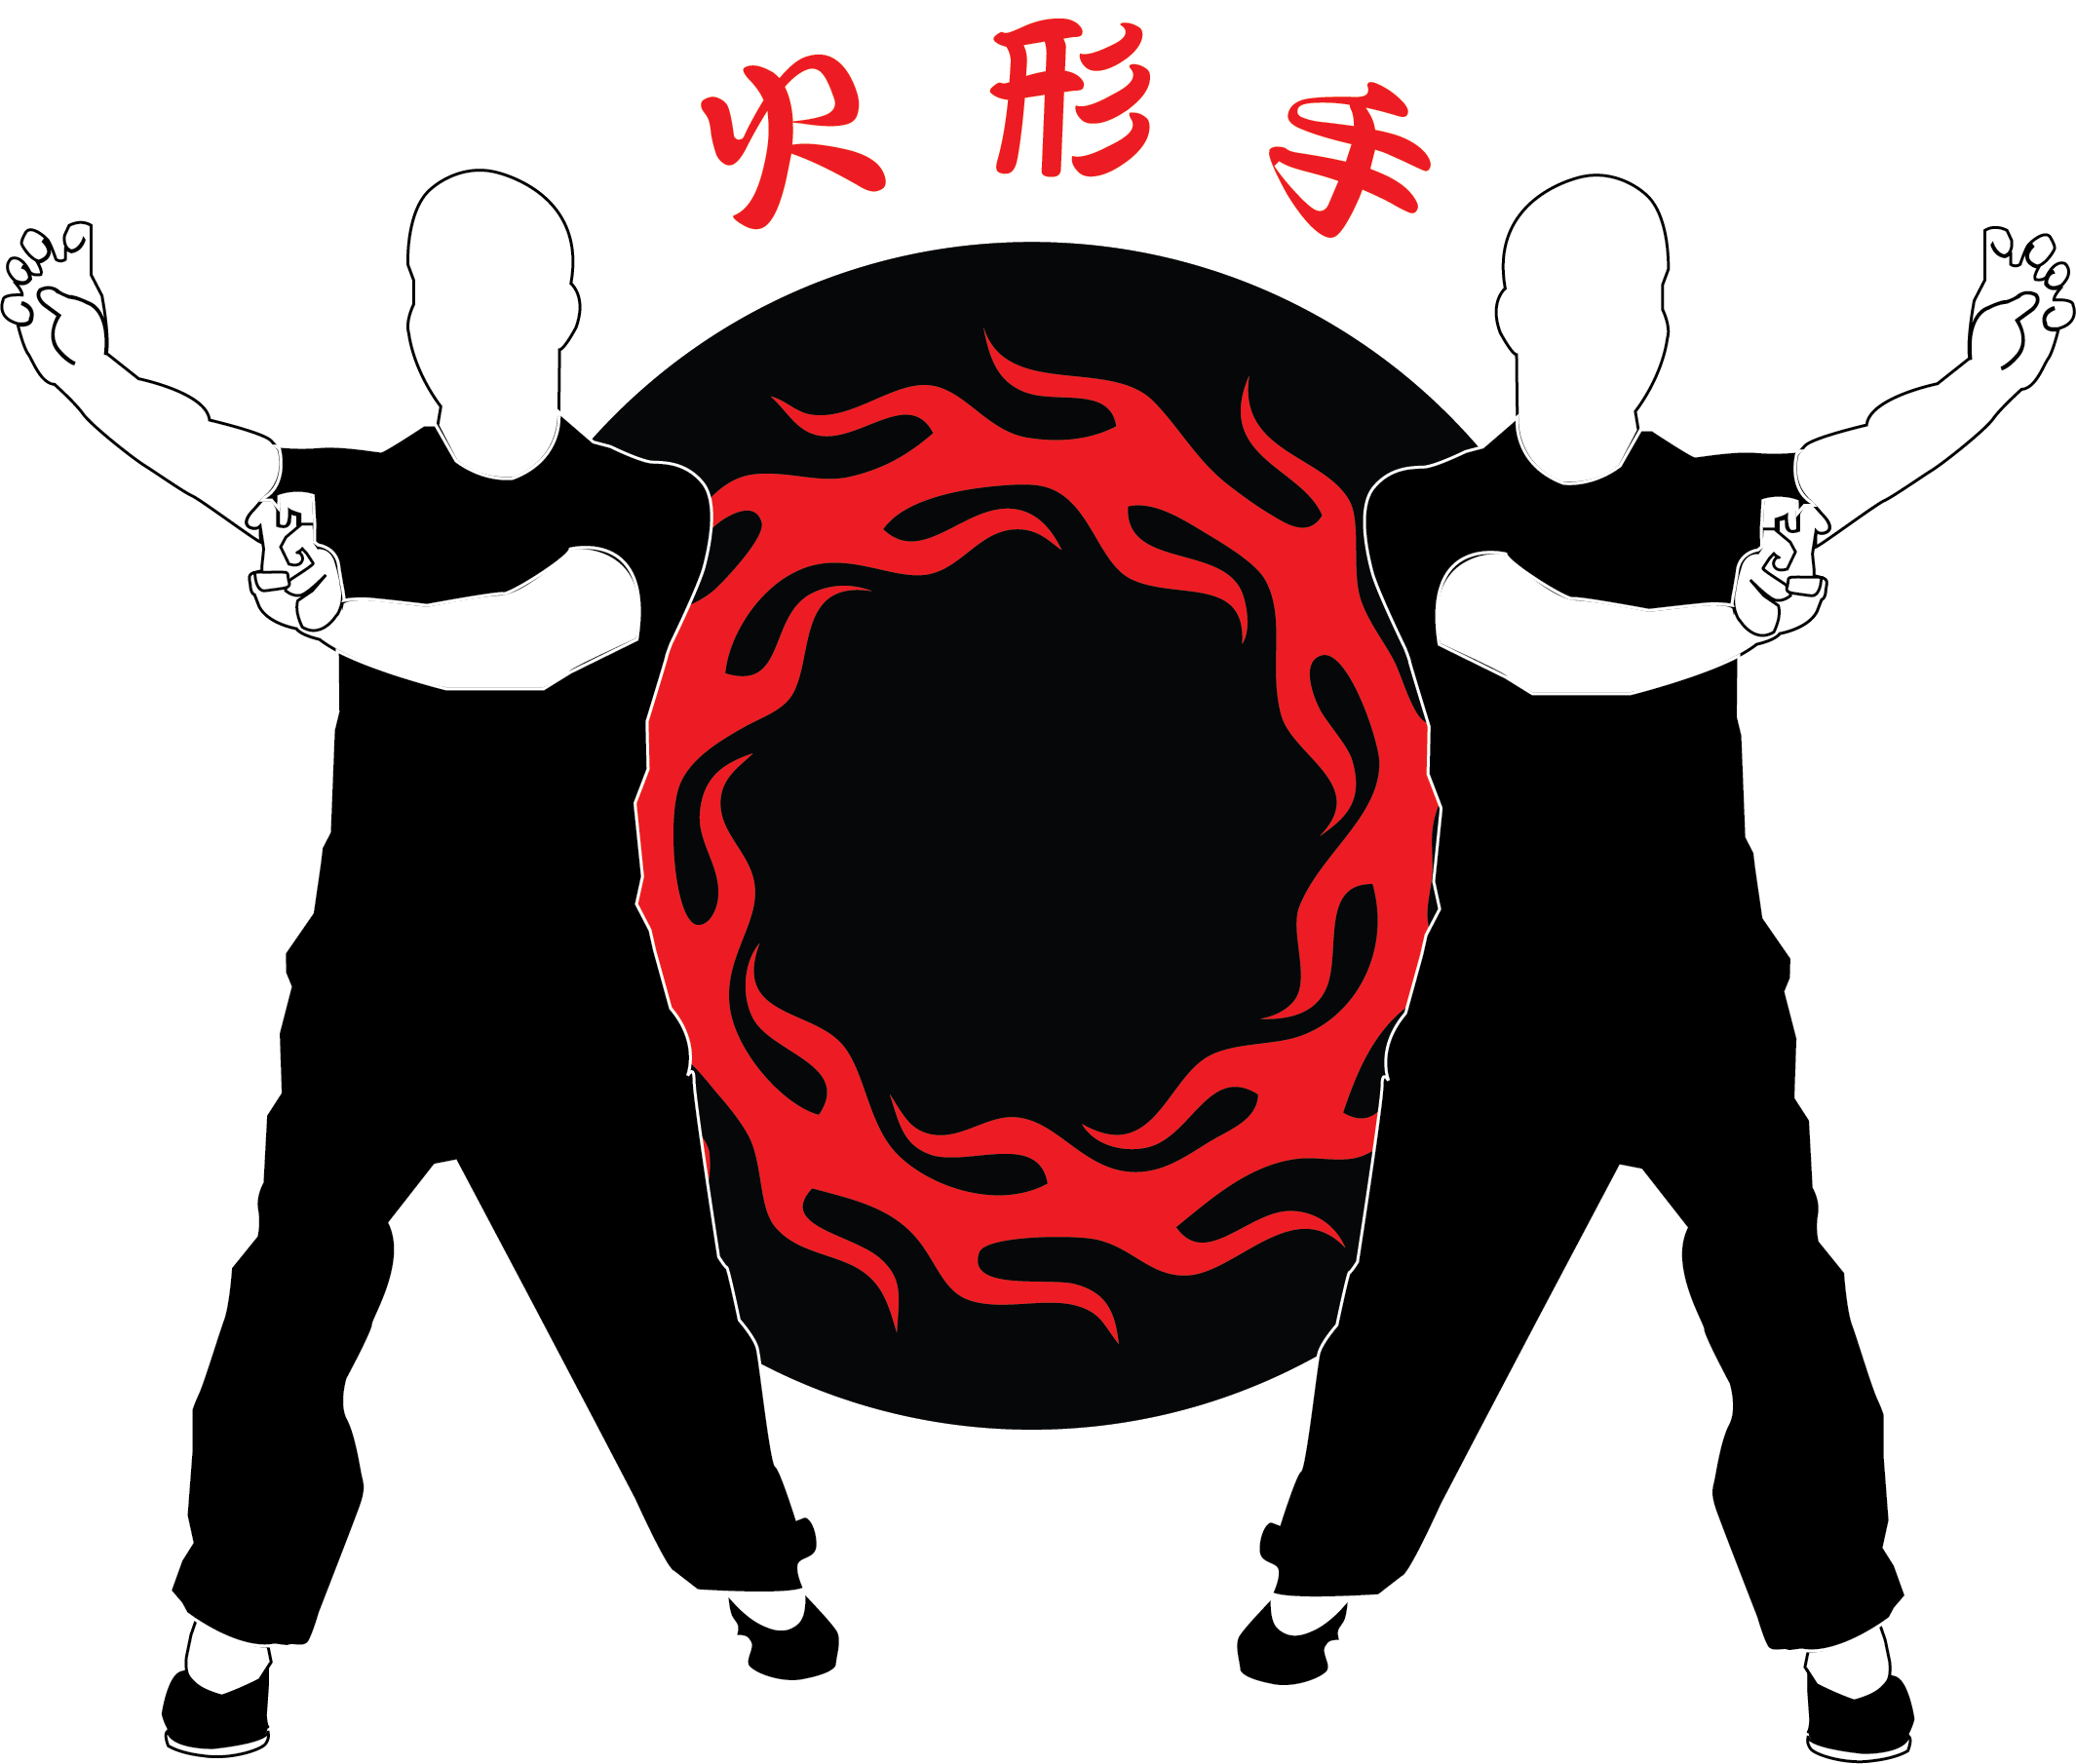 buddha curriculum kung. Fist clipart boxing